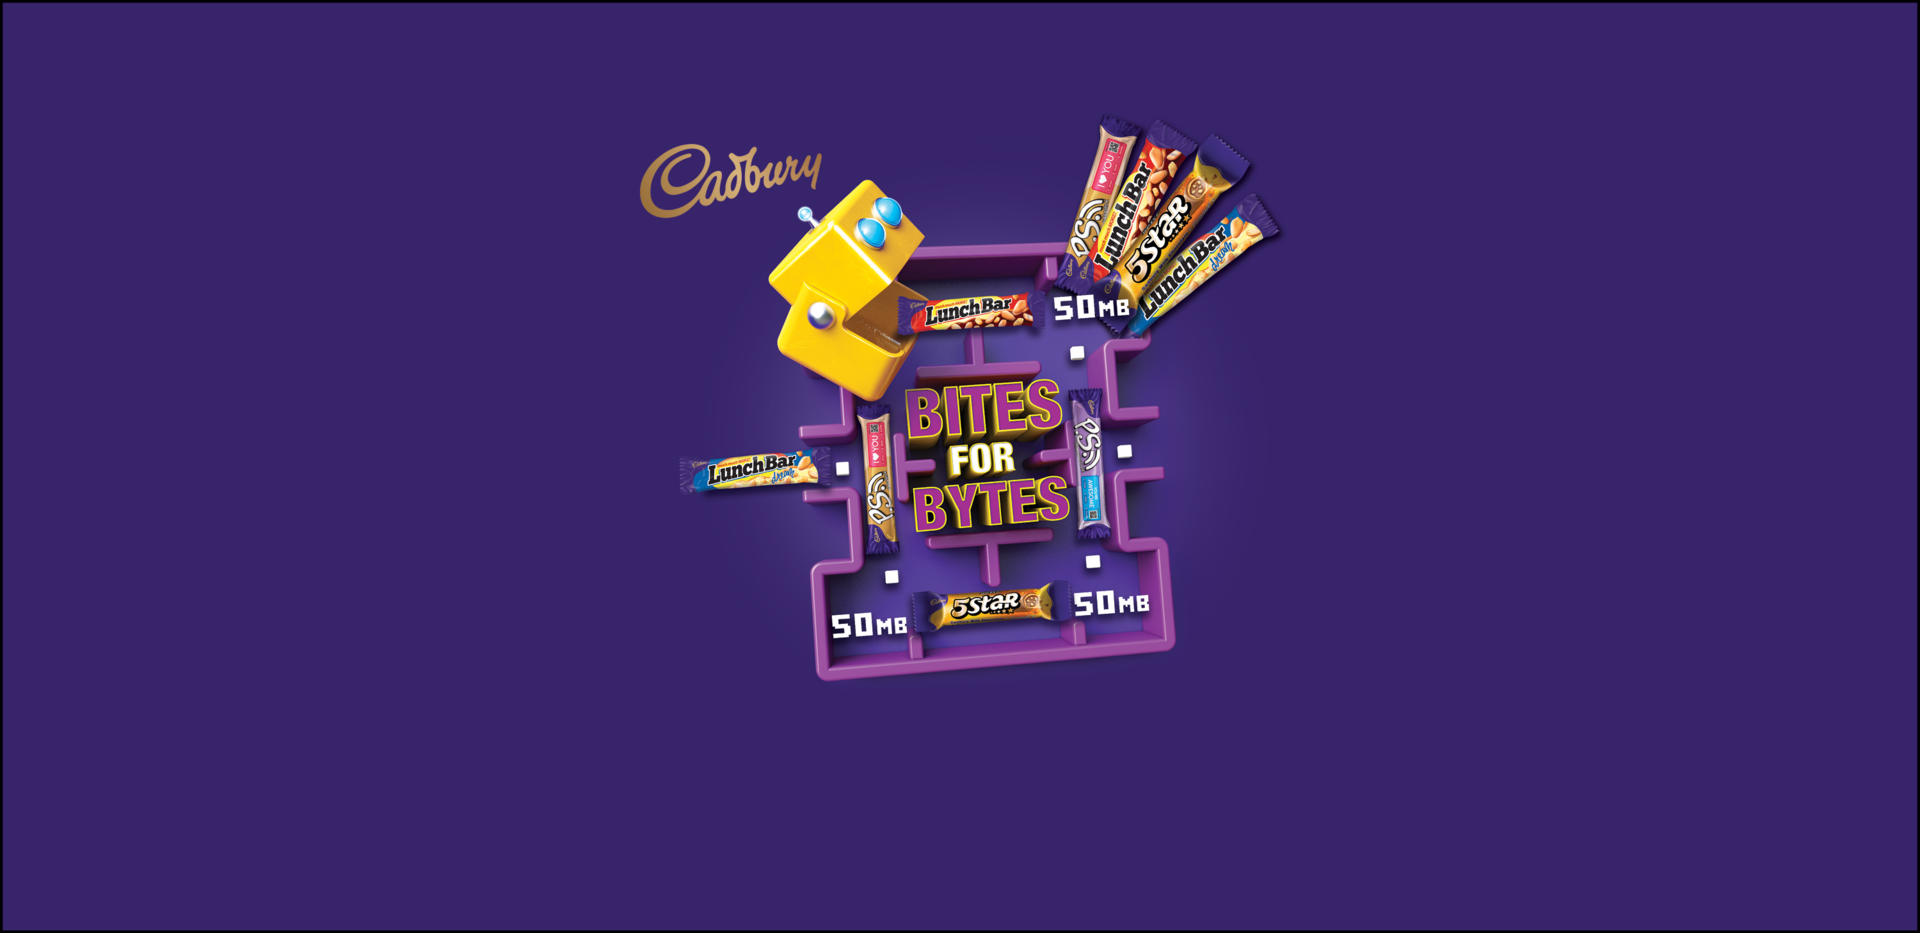 The more you bite, the more bytes you can GET with Cadbury! #Bites4Bytes